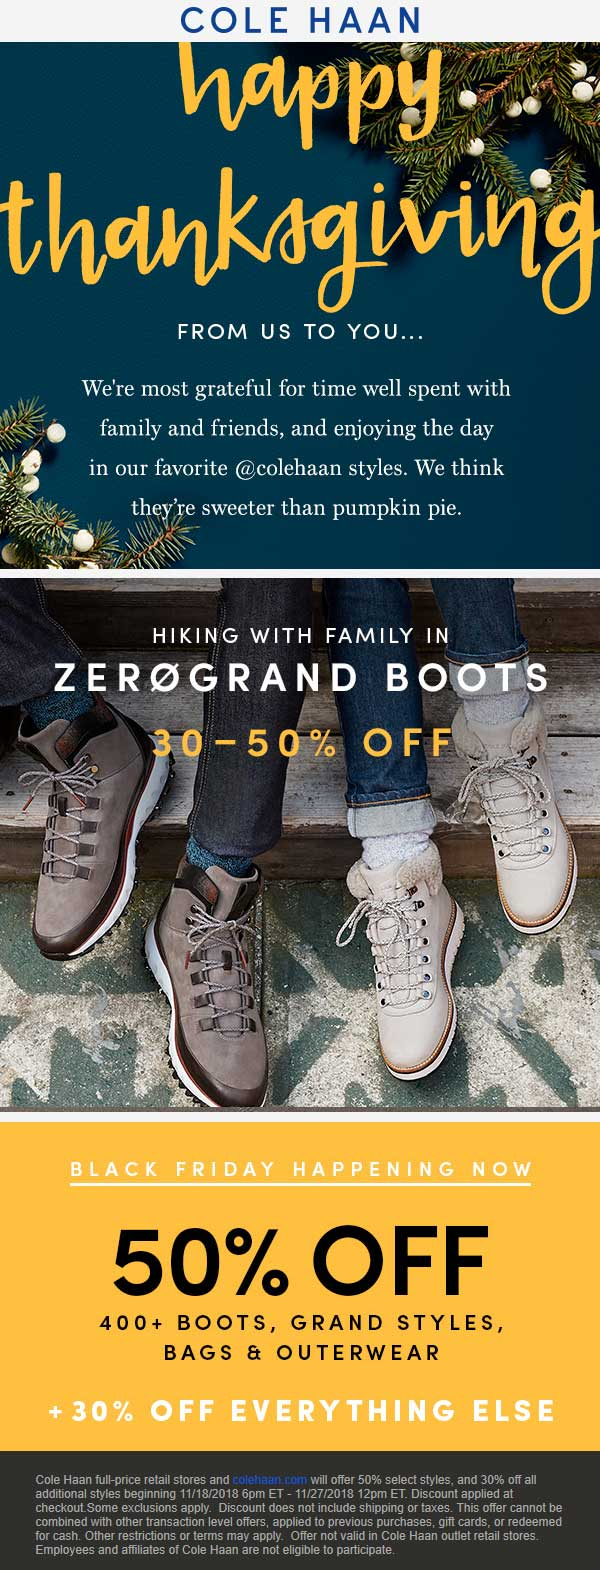 Cole Haan coupons & promo code for [July 2020]